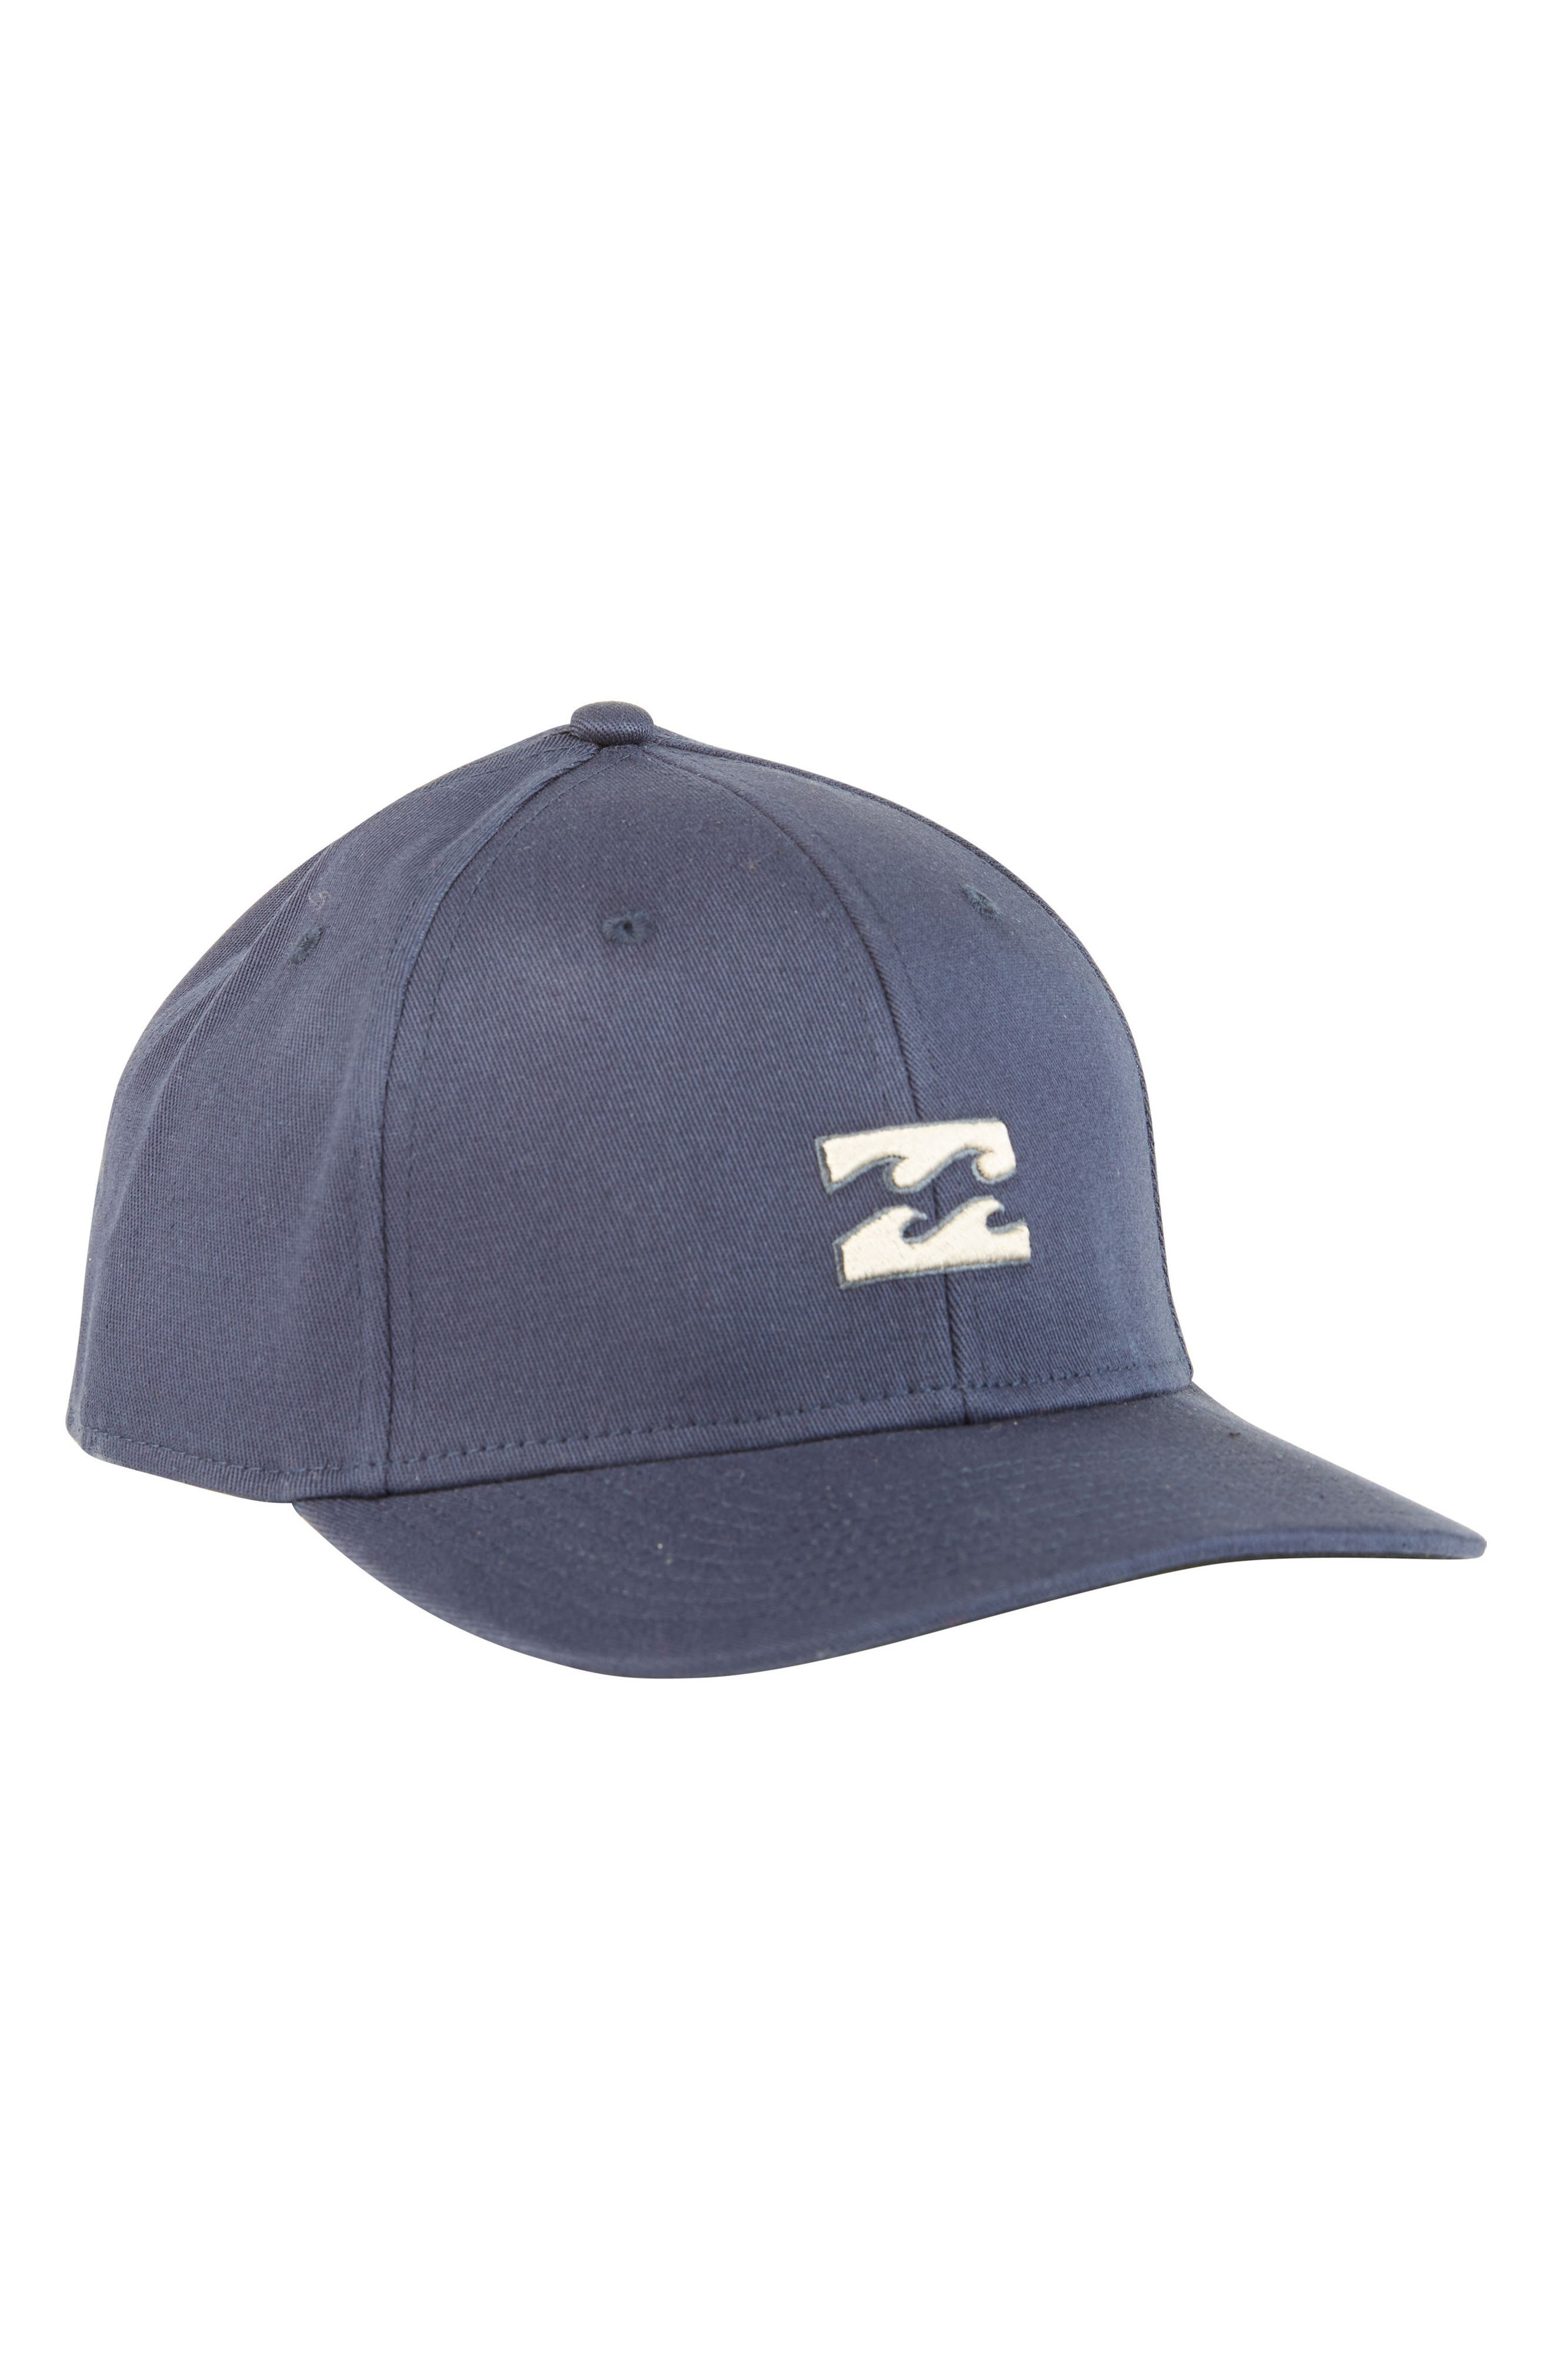 All Day Stretch Baseball Cap,                         Main,                         color, NAVY